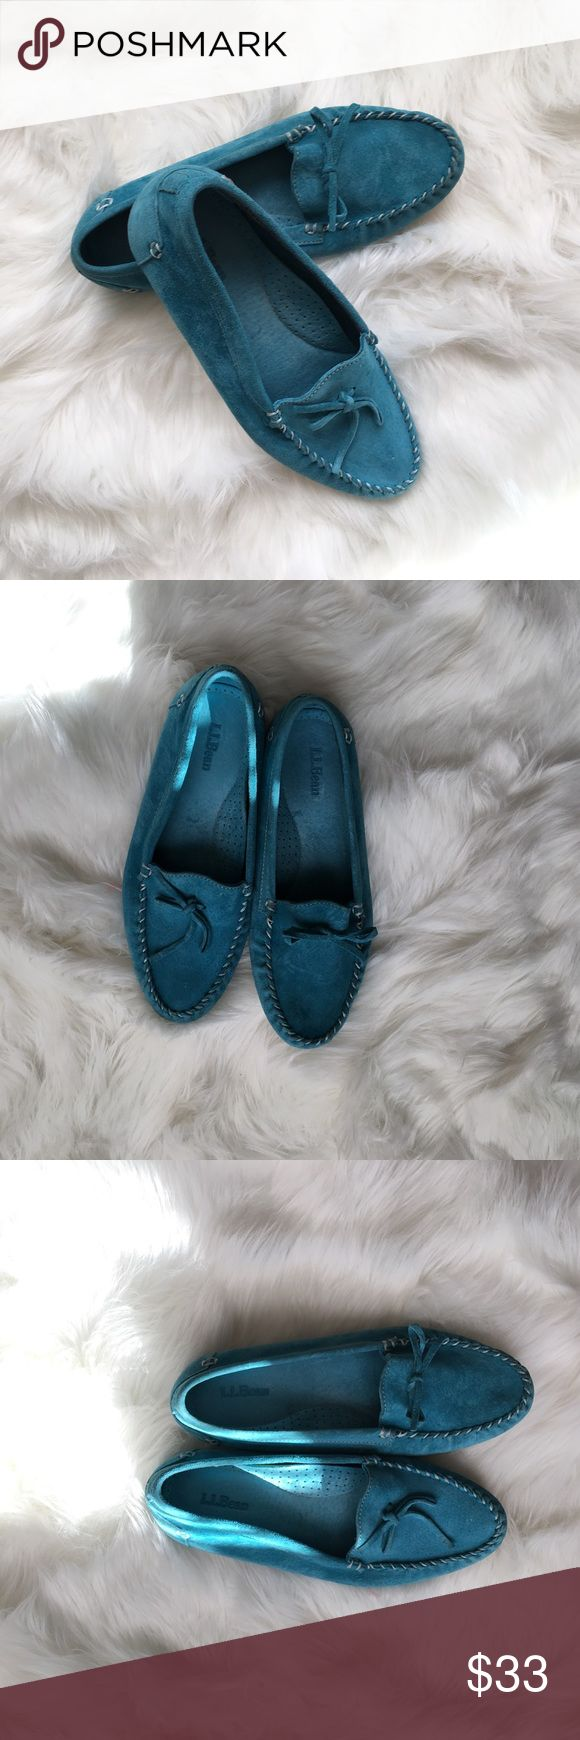 LL Bean Suede Moccasins Size 8 M. Great condition. Beautiful Teal. Suede. L.L. Bean Shoes Moccasins